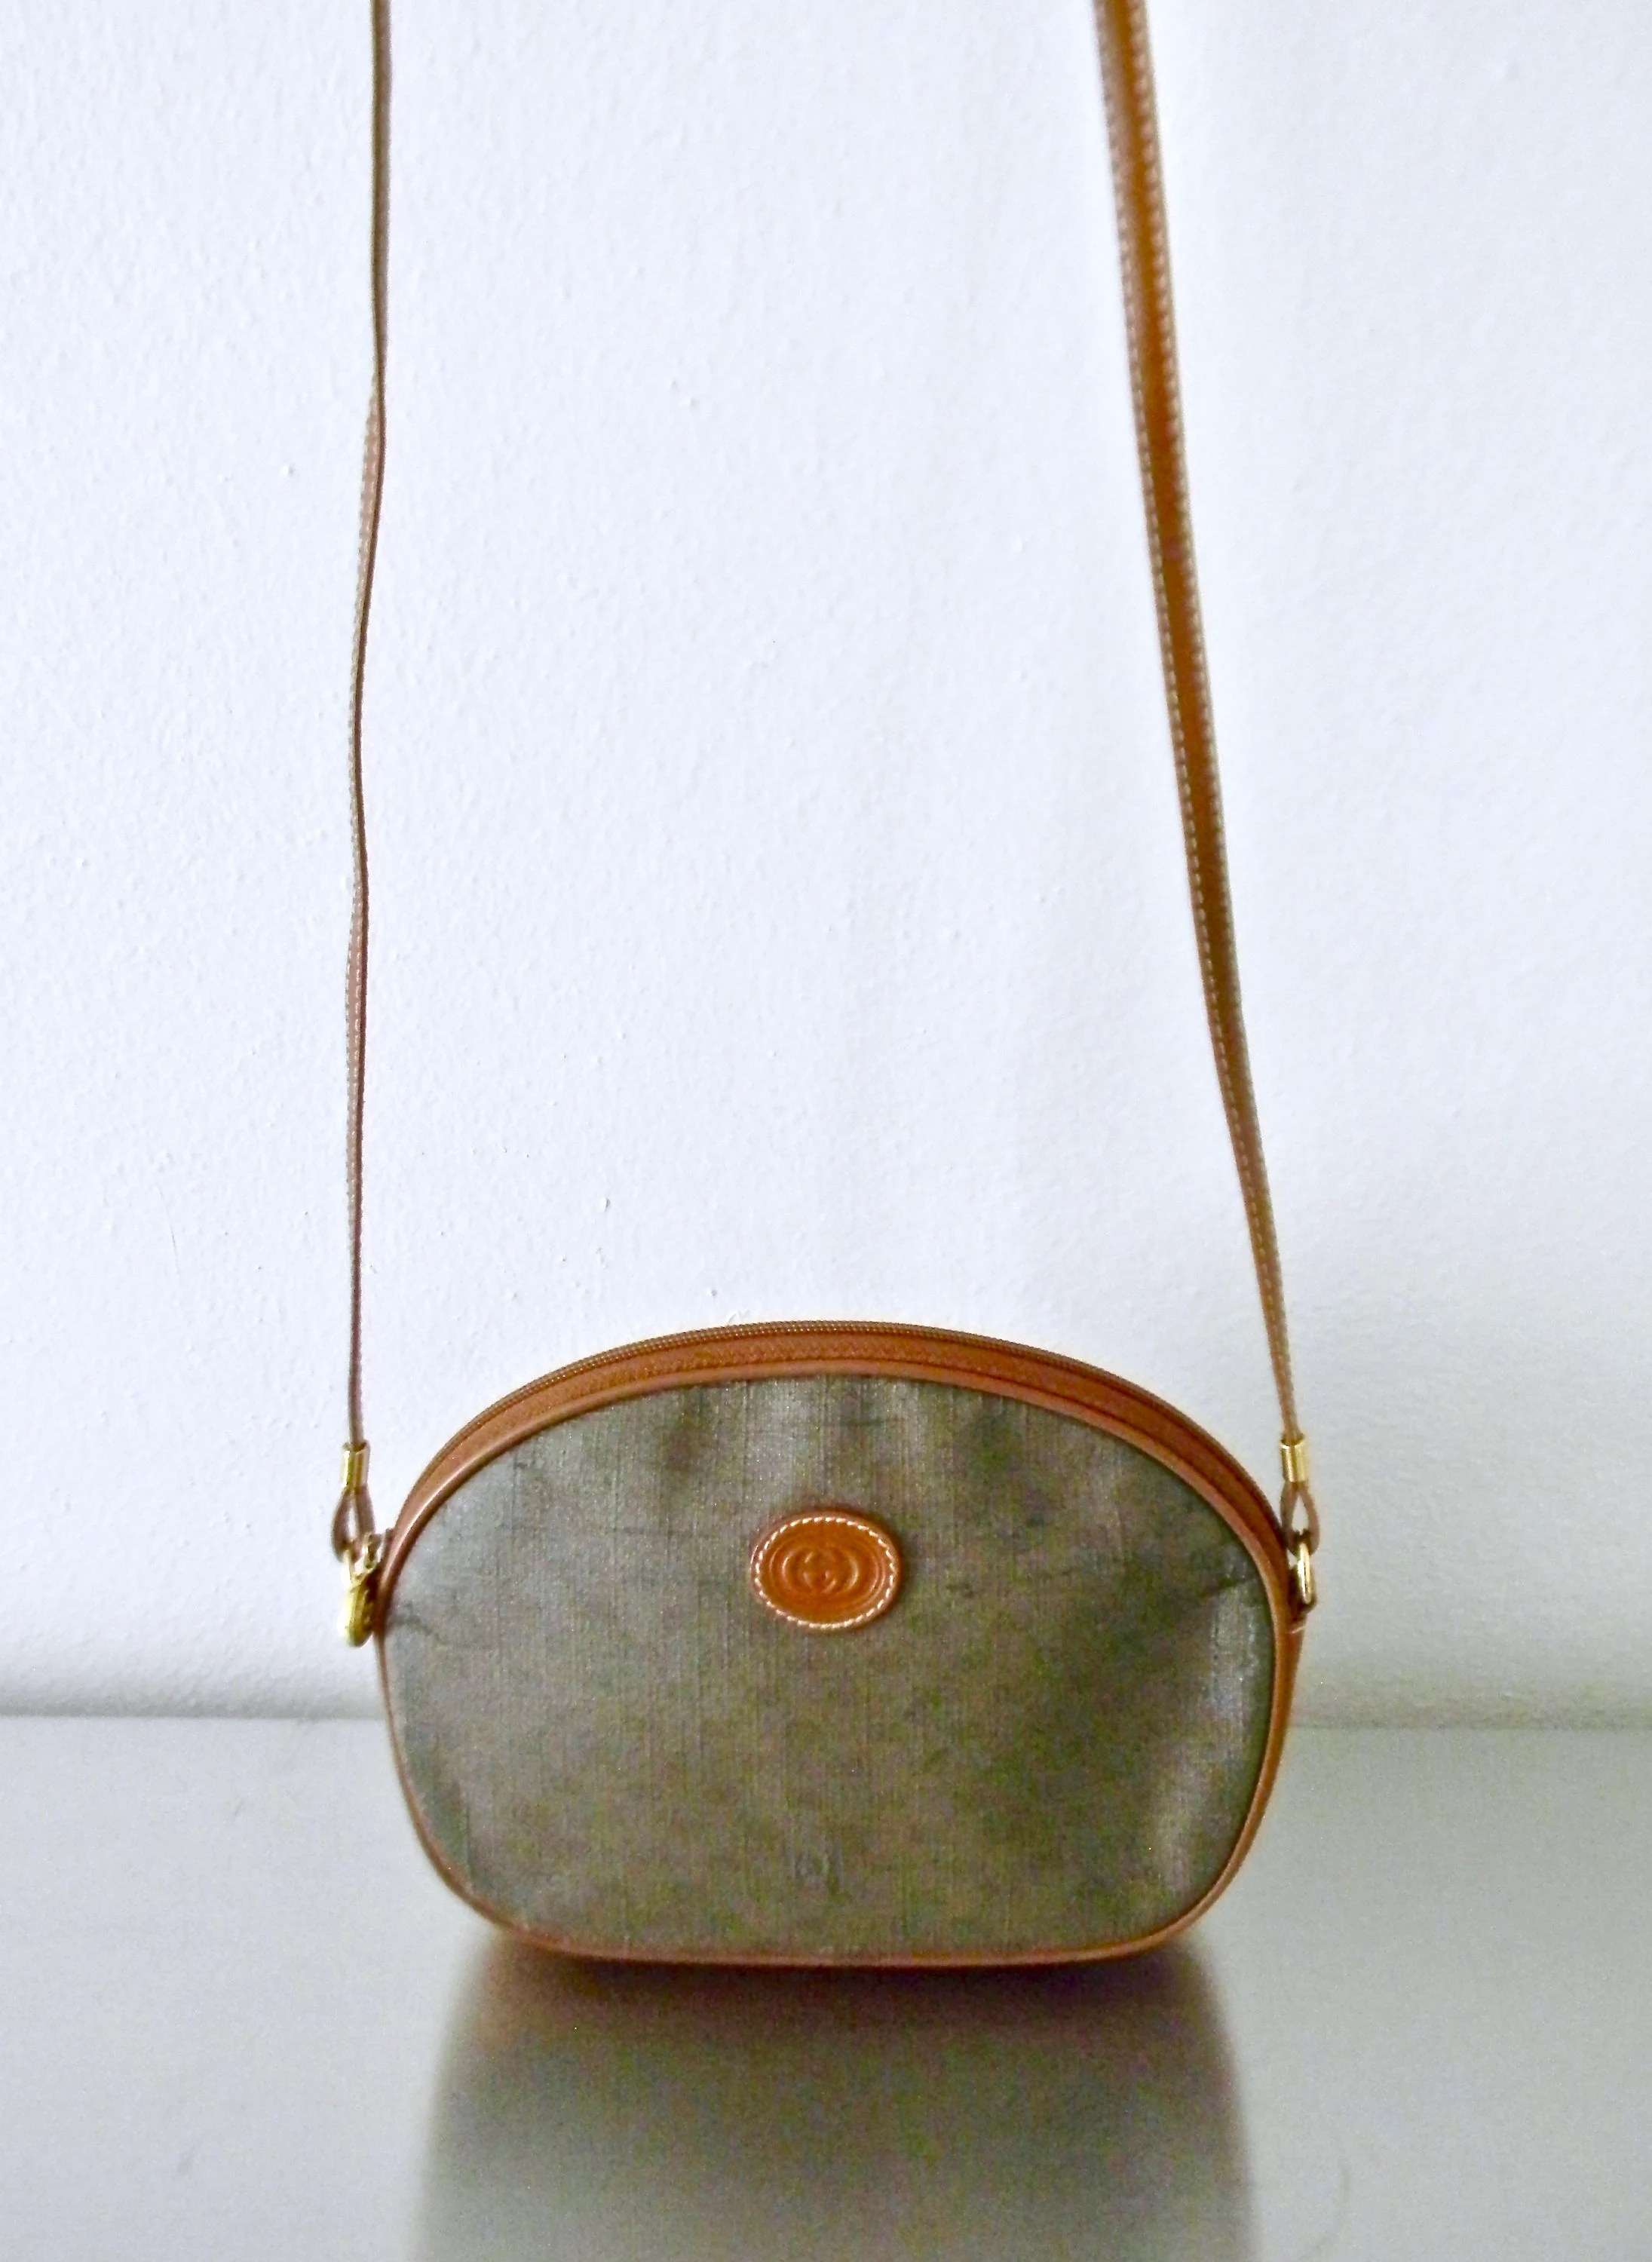 Etsy Vintage Gucci Vintage Gucci Gg Monogram Coated Canvas Small Crossbody Purse Coated Canvas And Leather Guccissima Vintage Handbag Festival Bag